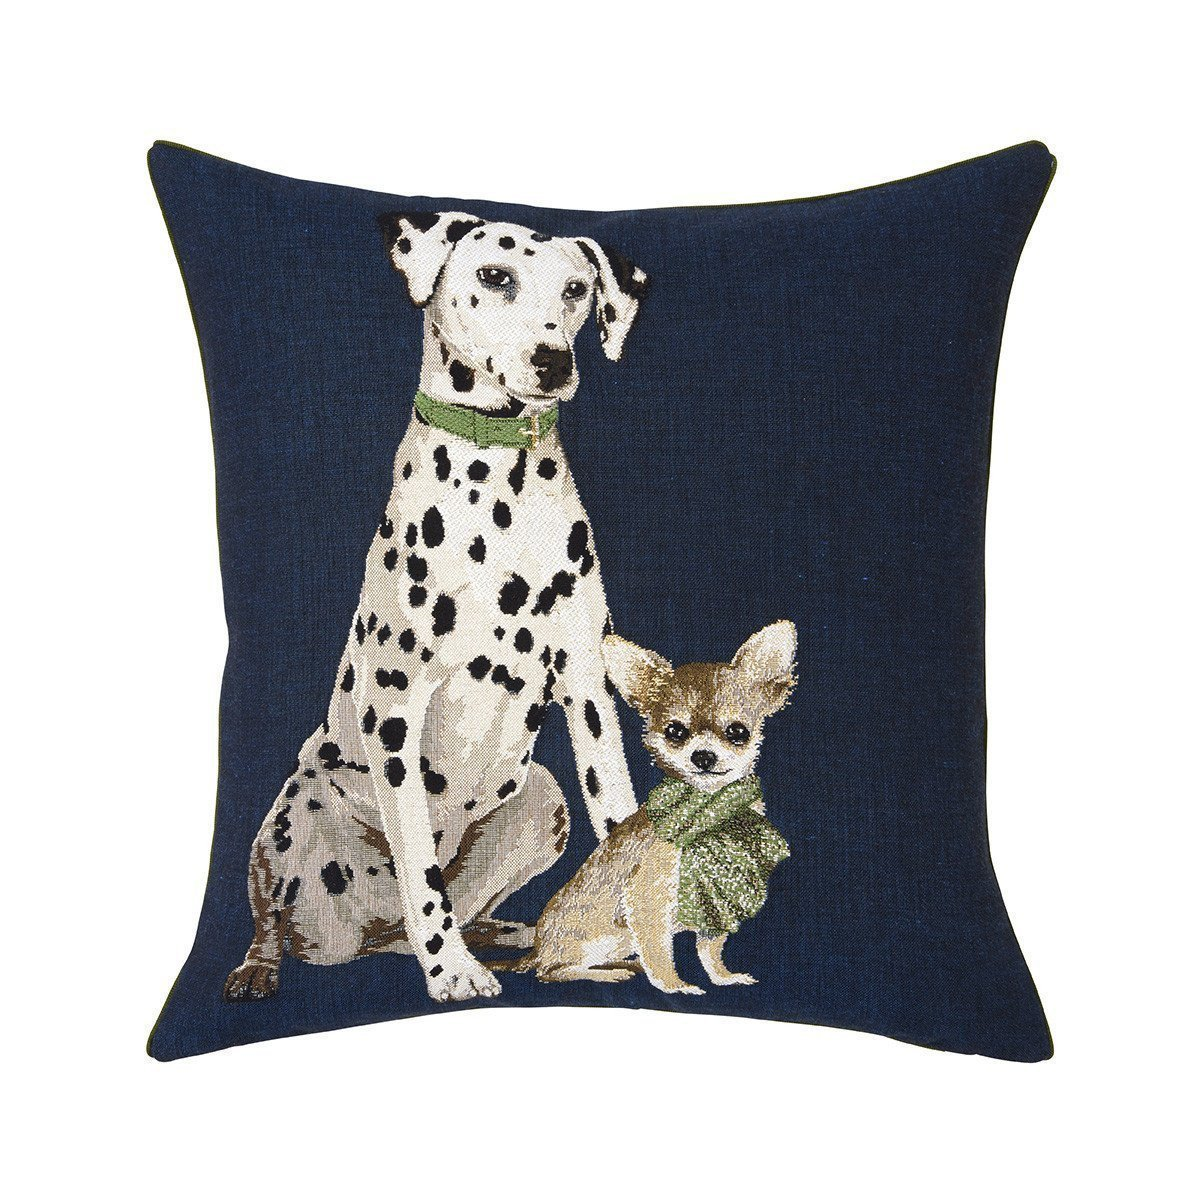 TUILERIES Duo Cushion Cover